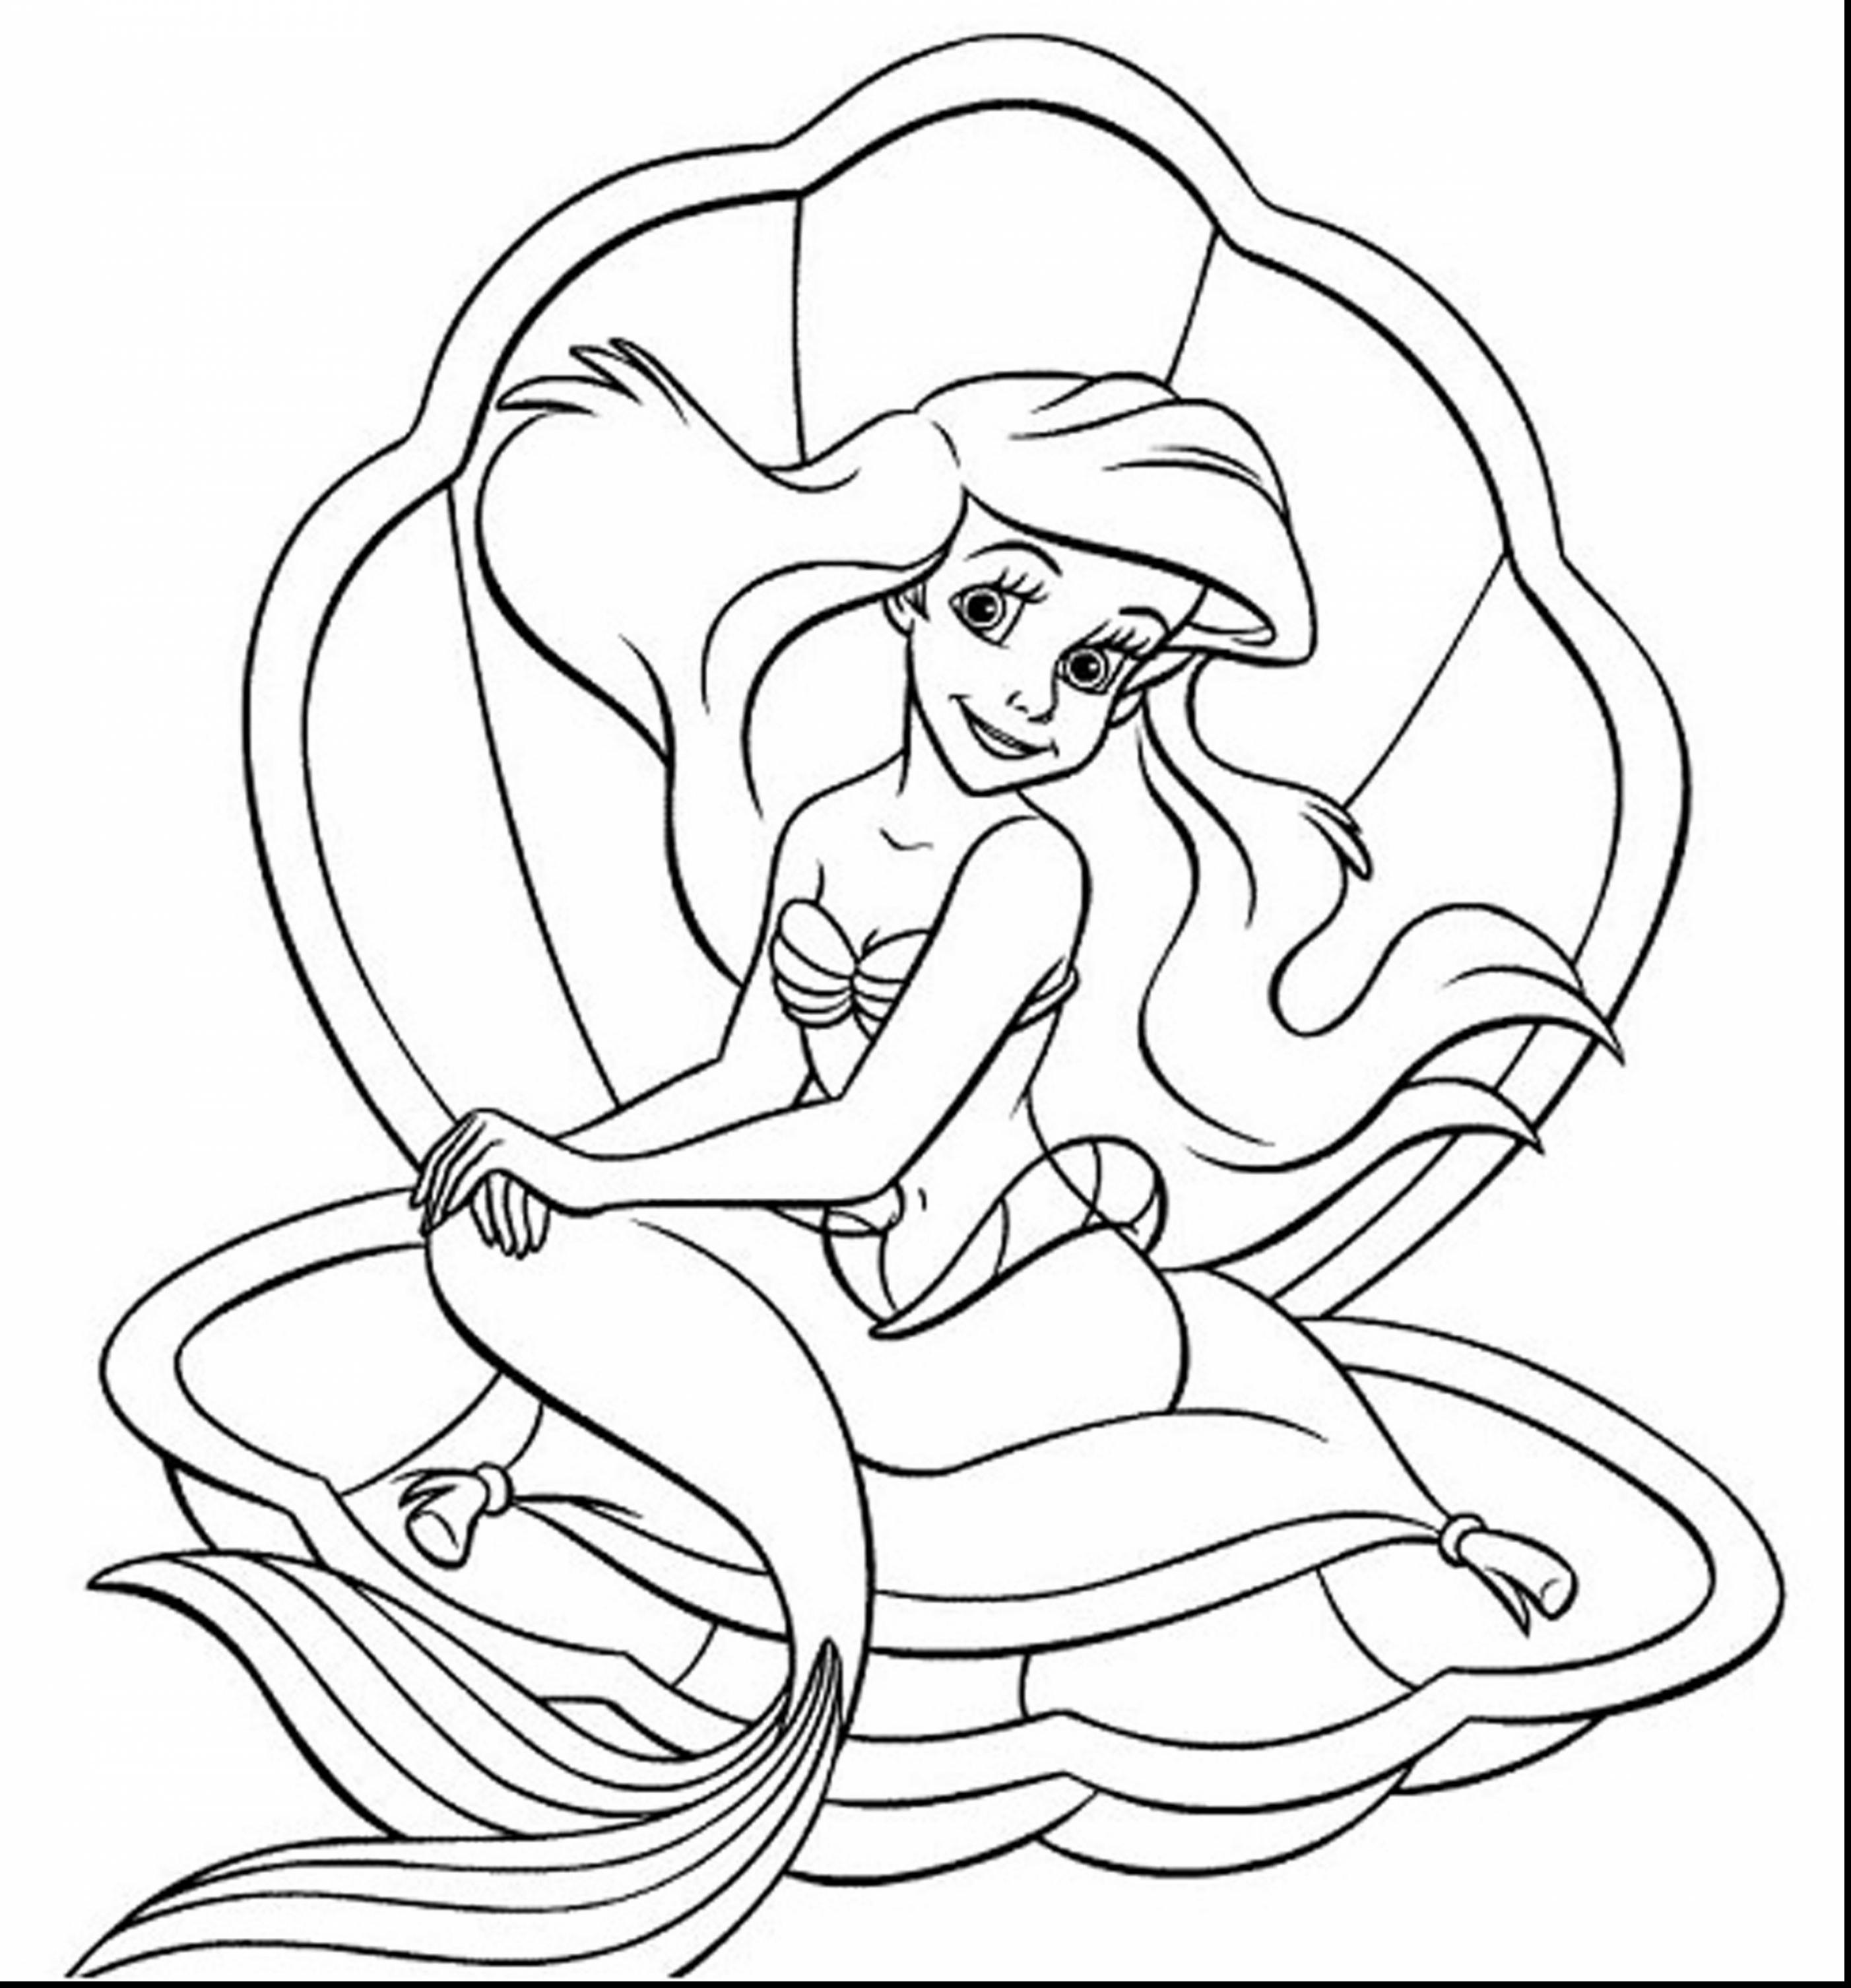 sofia the princess coloring pages 27 sofia the first coloring book in 2020 cartoon sofia coloring the princess pages